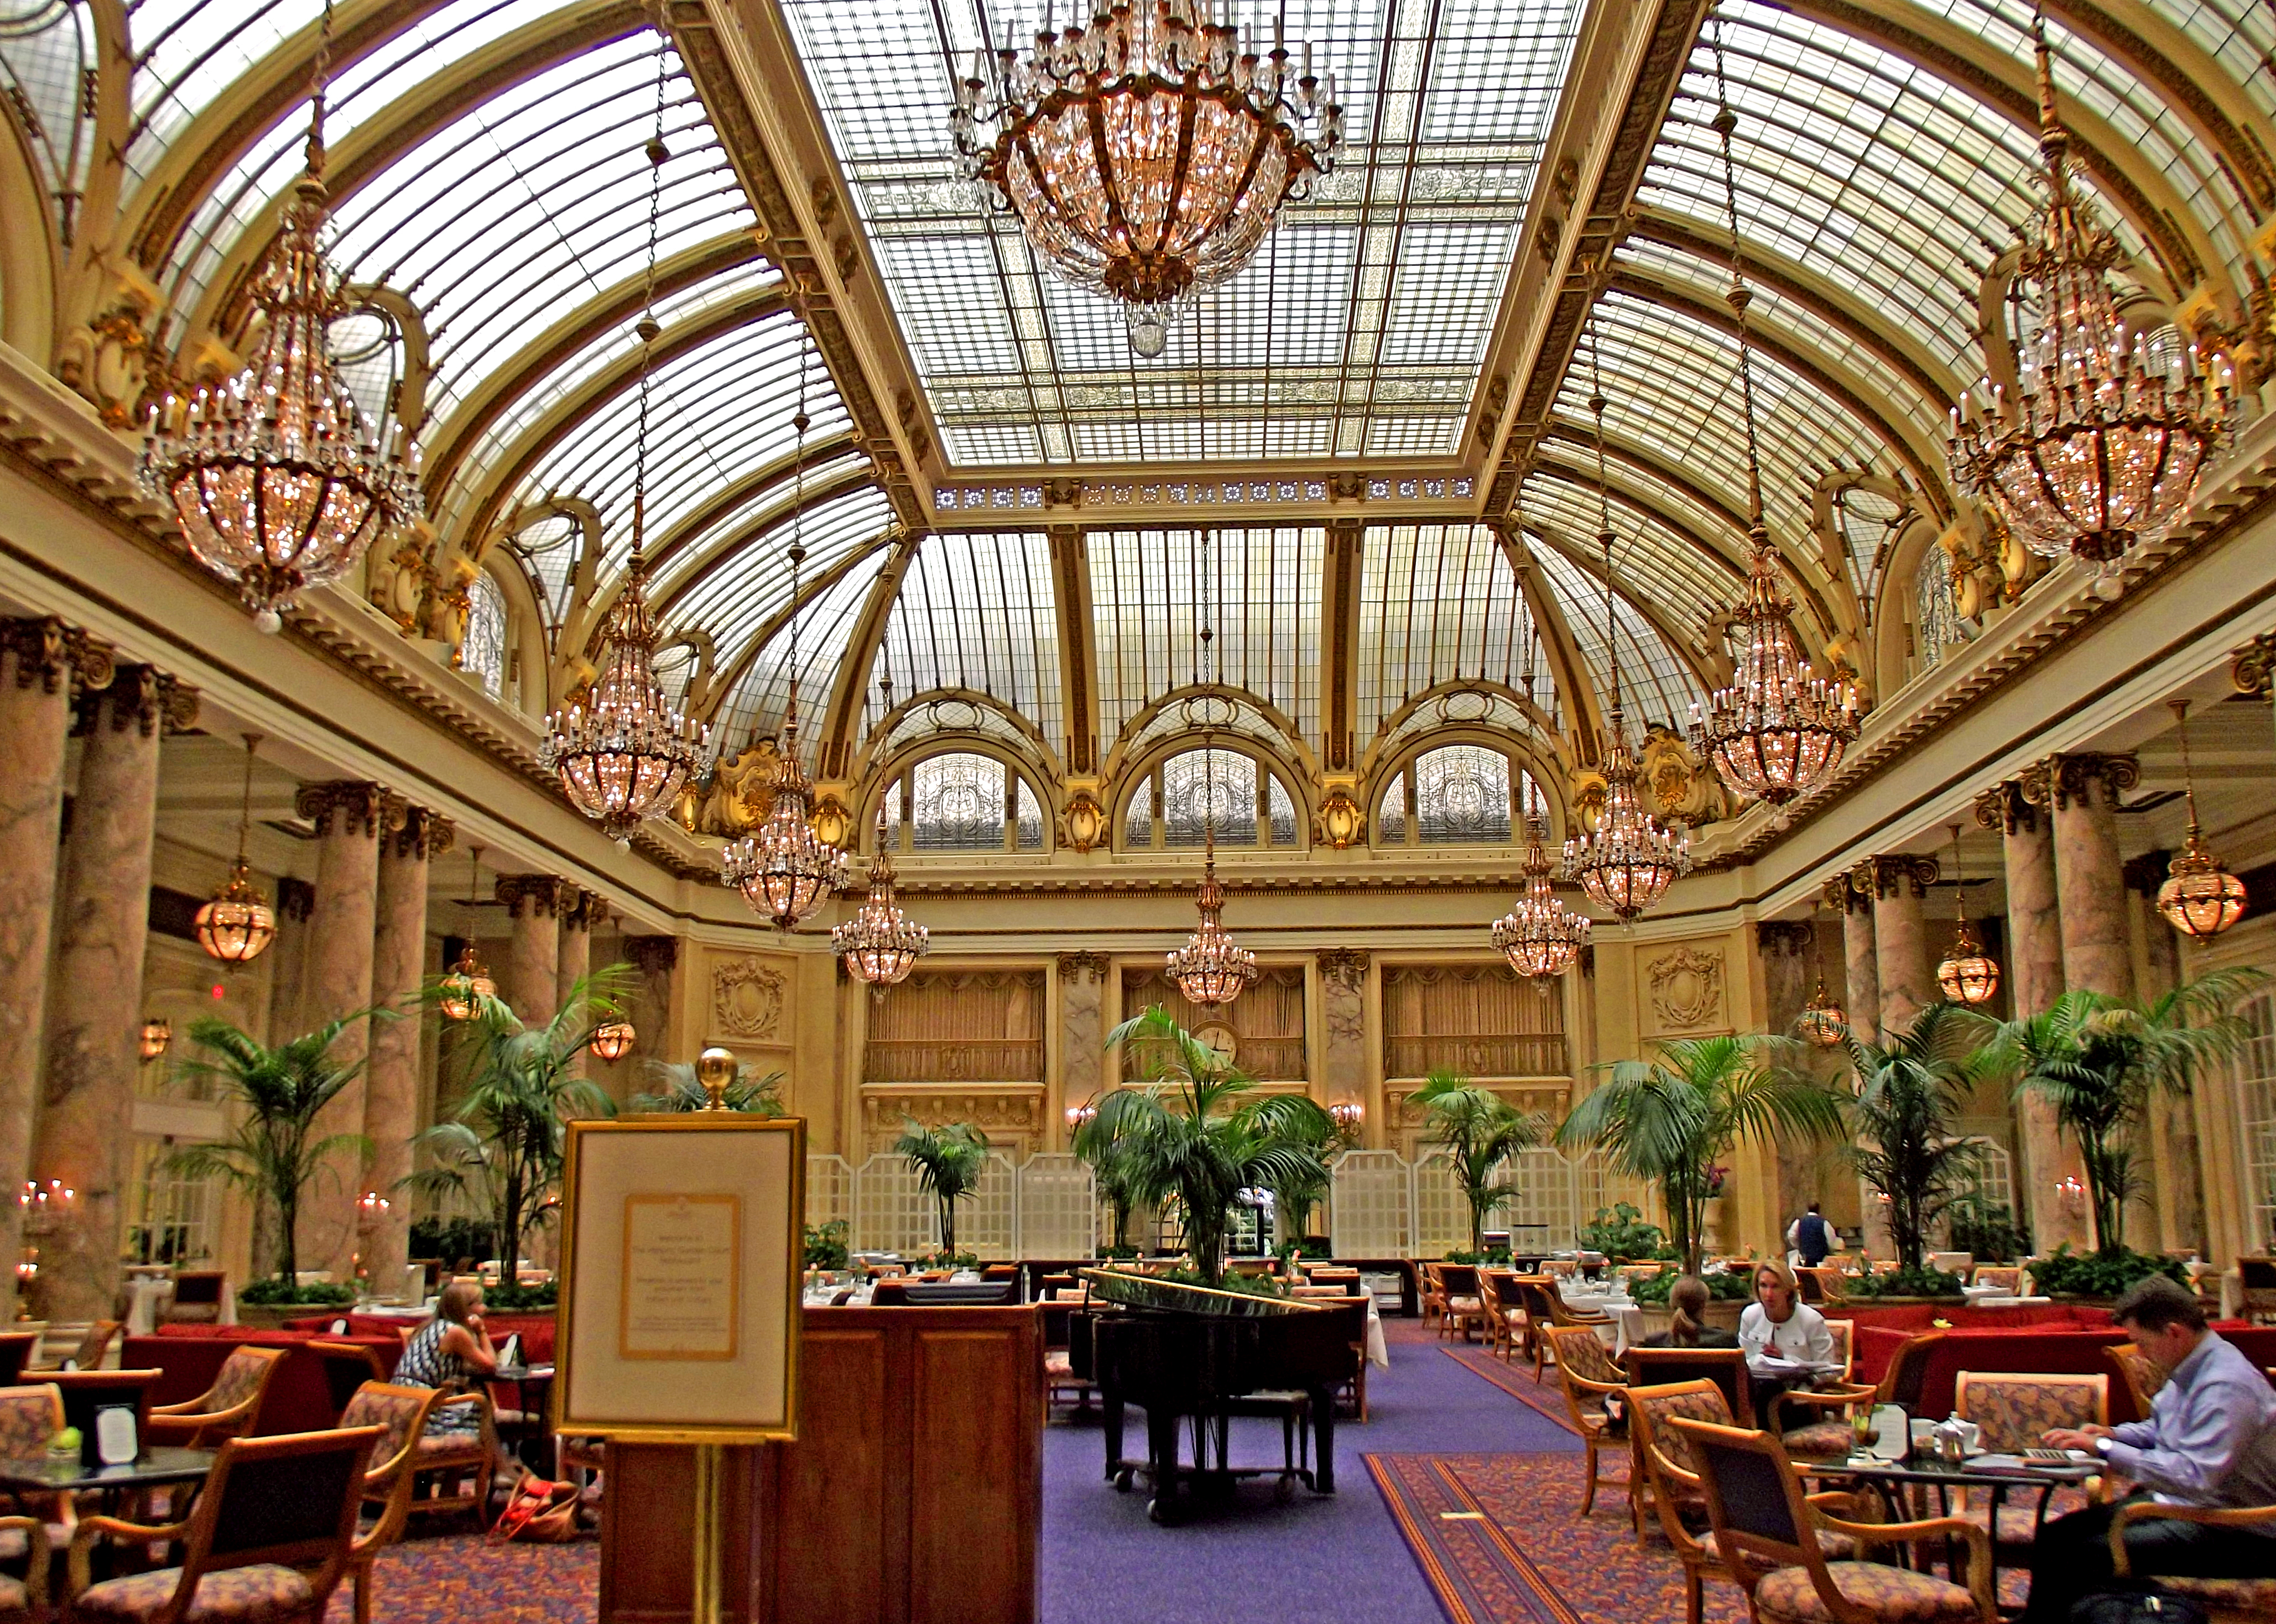 File:Palace Hotel, Garden Court Restaurant 2.jpg - Wikimedia Commons